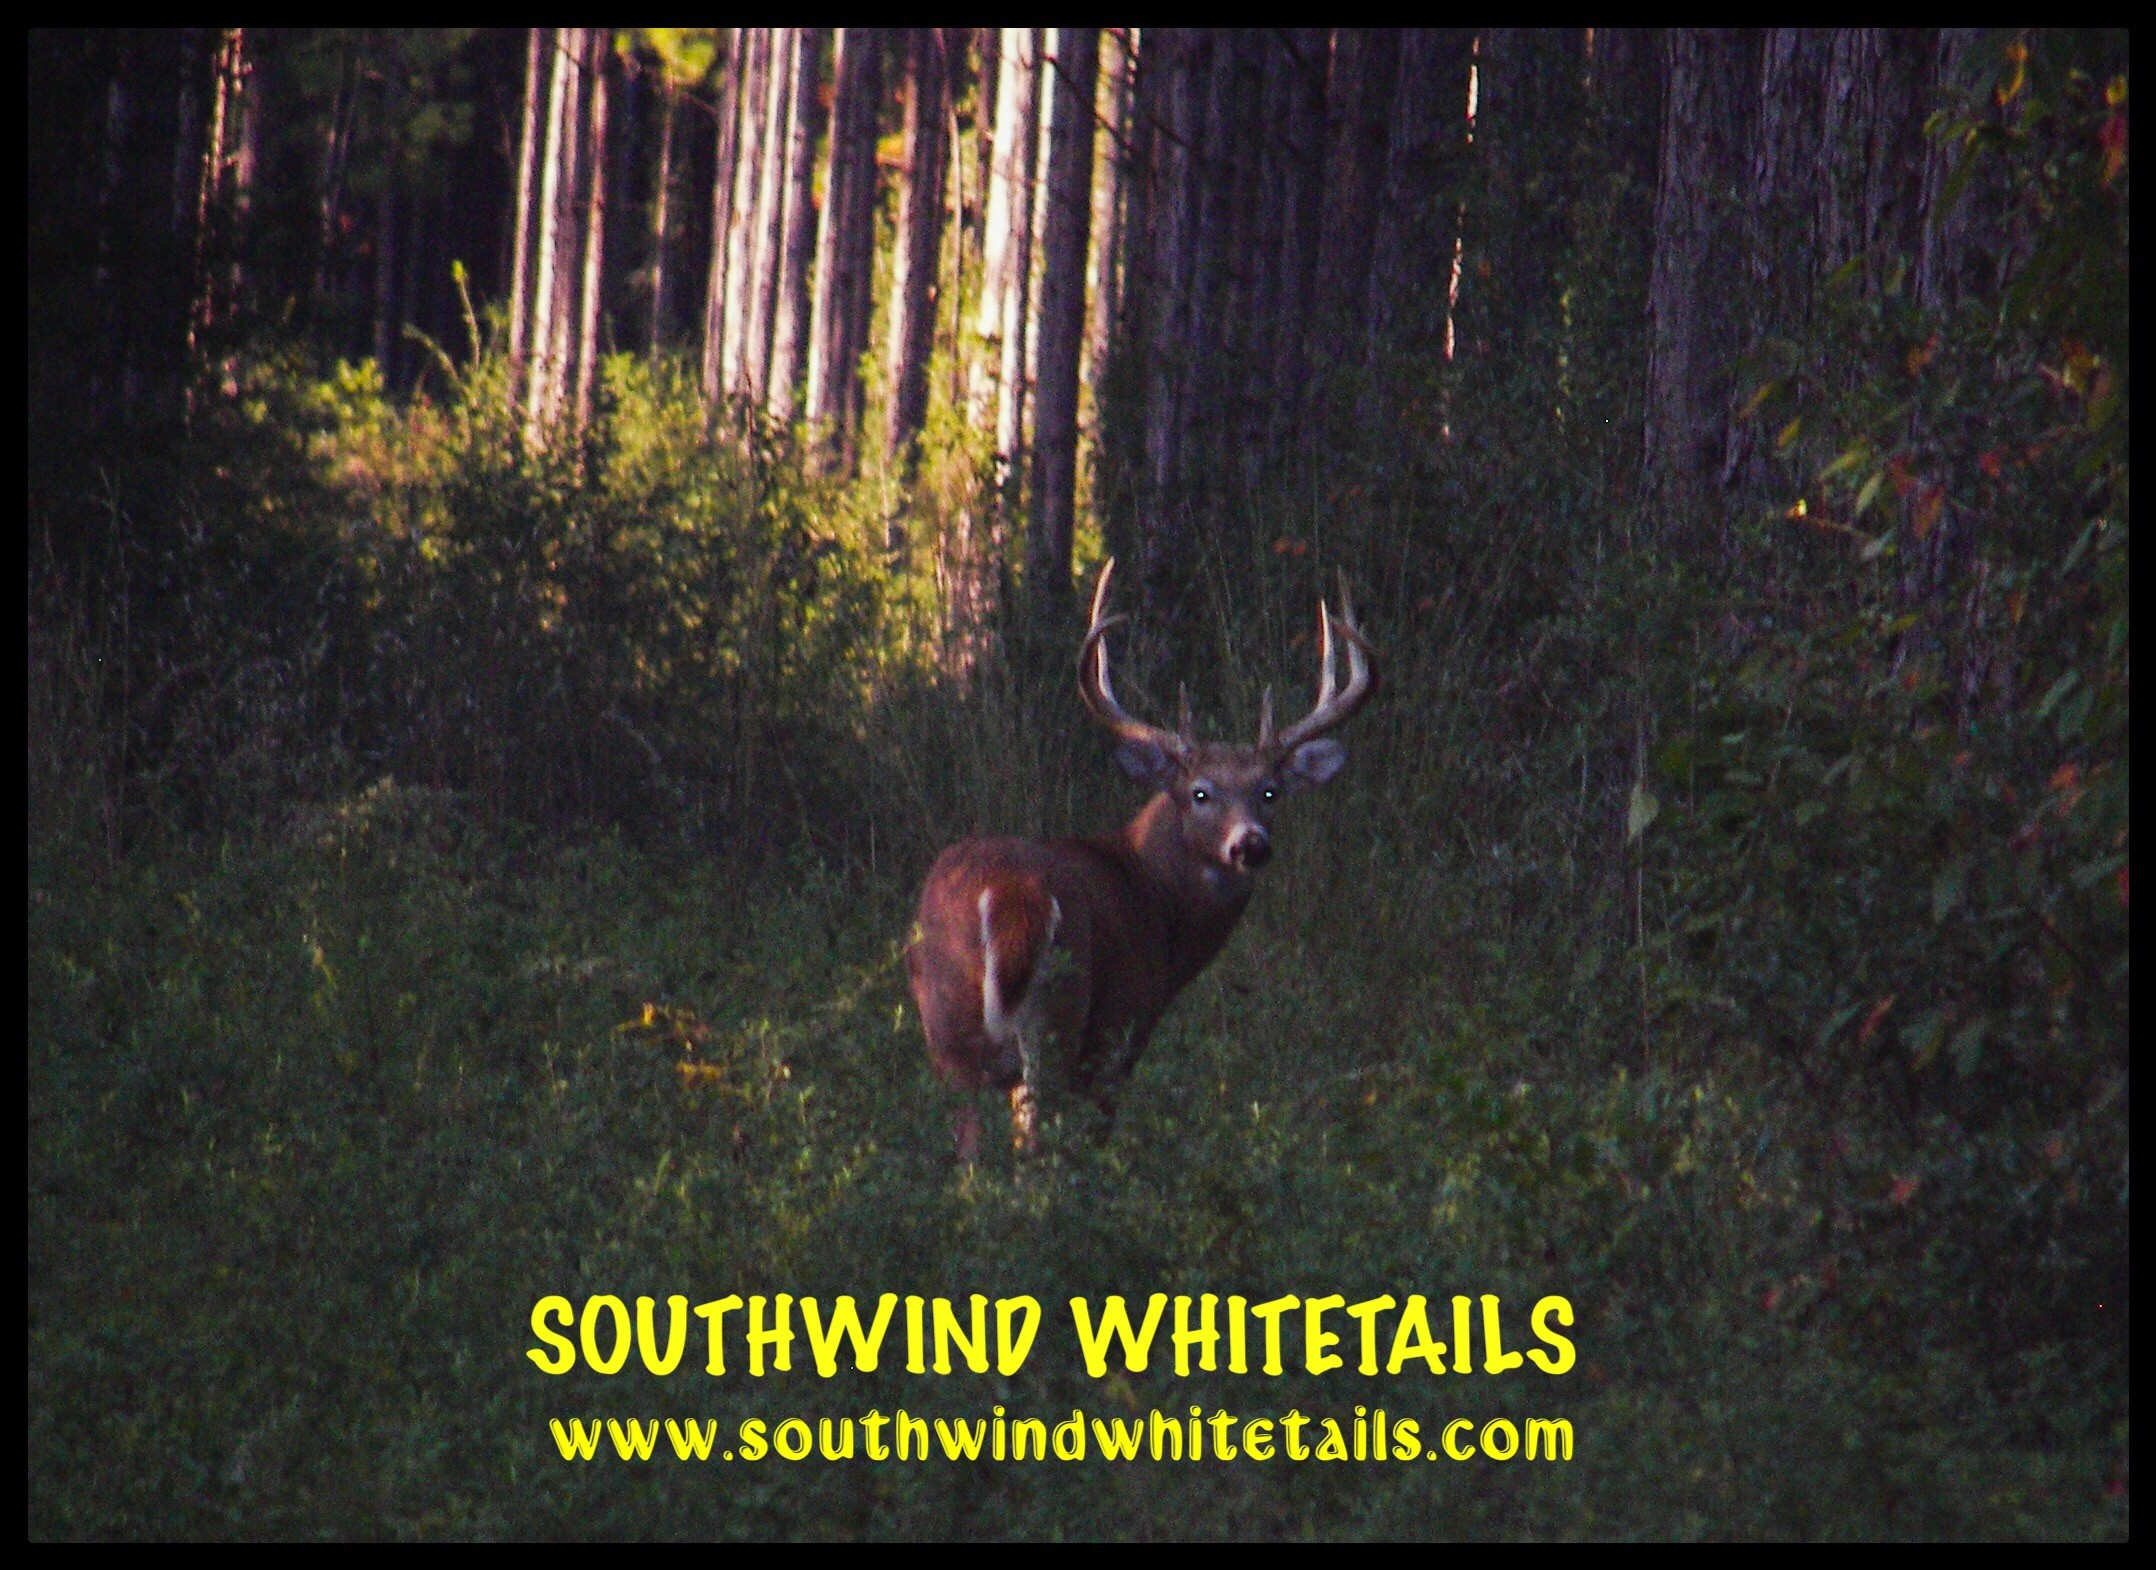 Southwind Whitetails: Whitetails Hunt